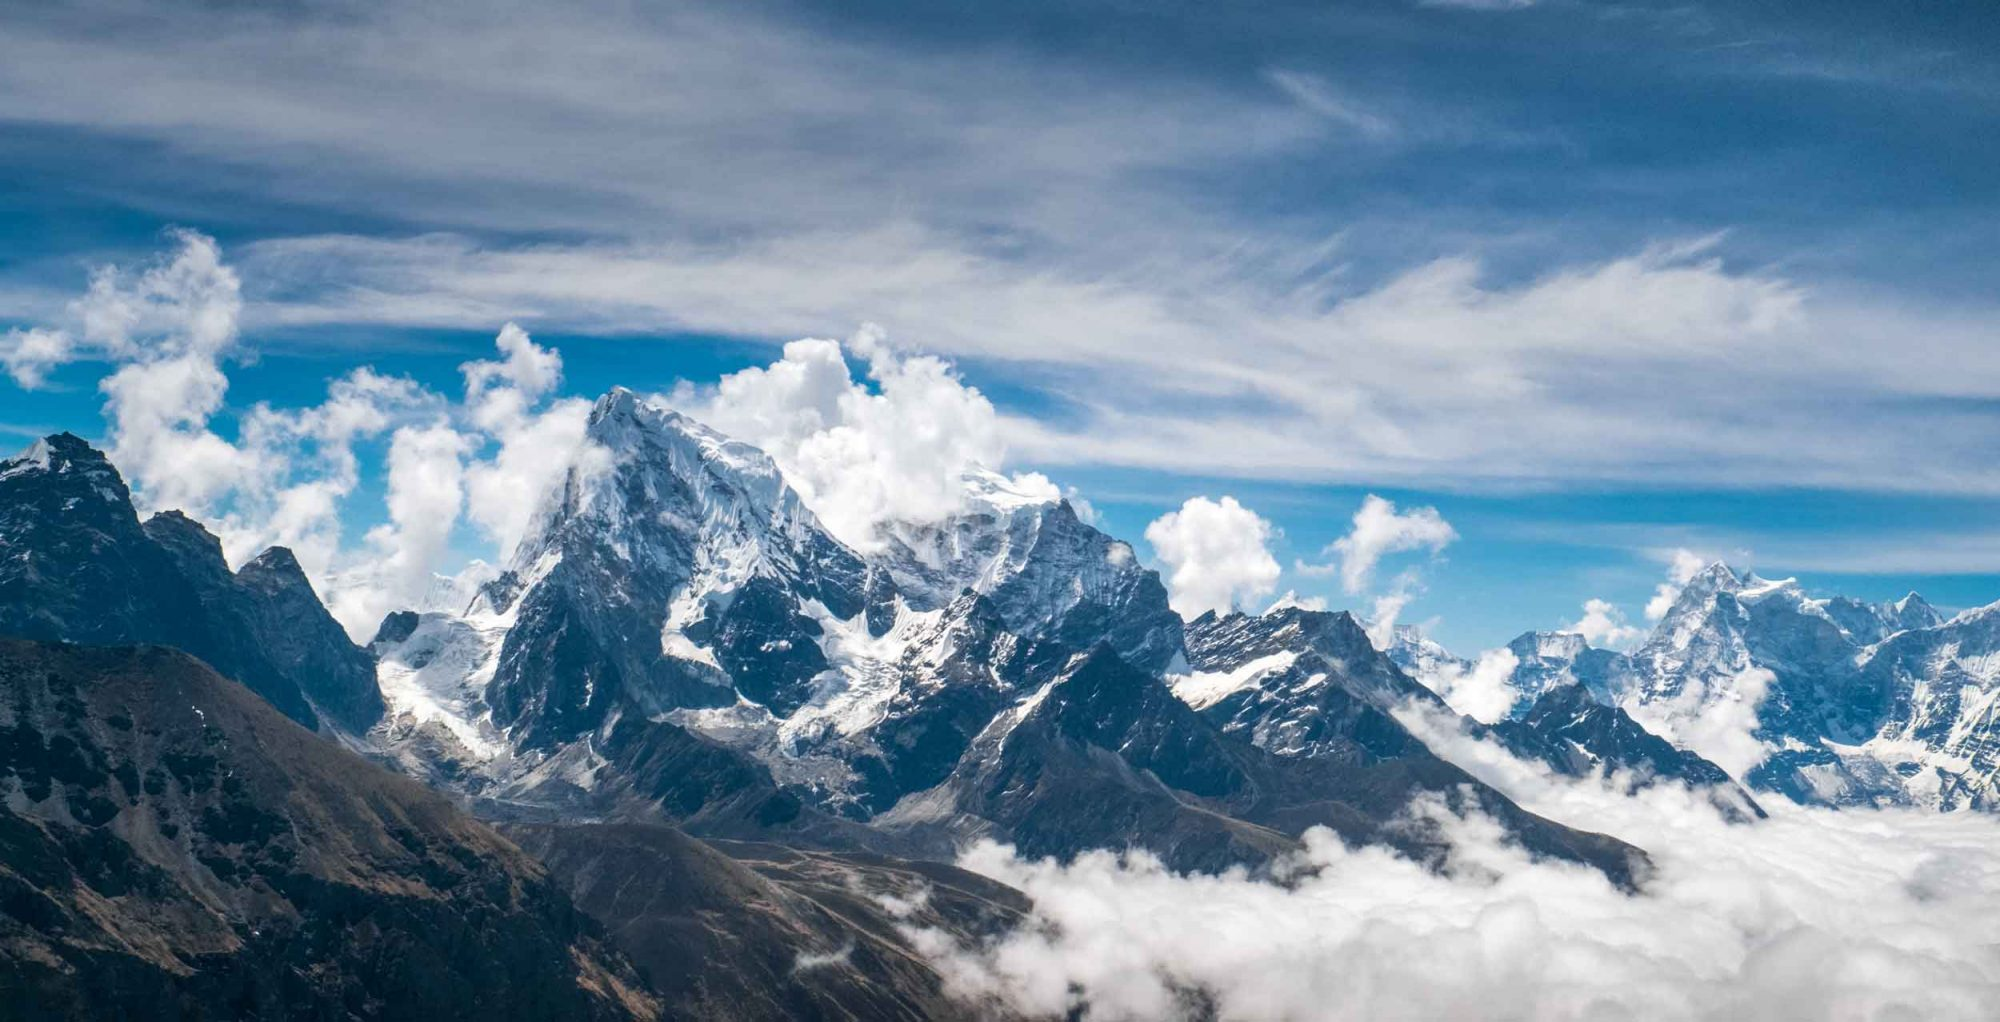 An image of snow-capped mountains